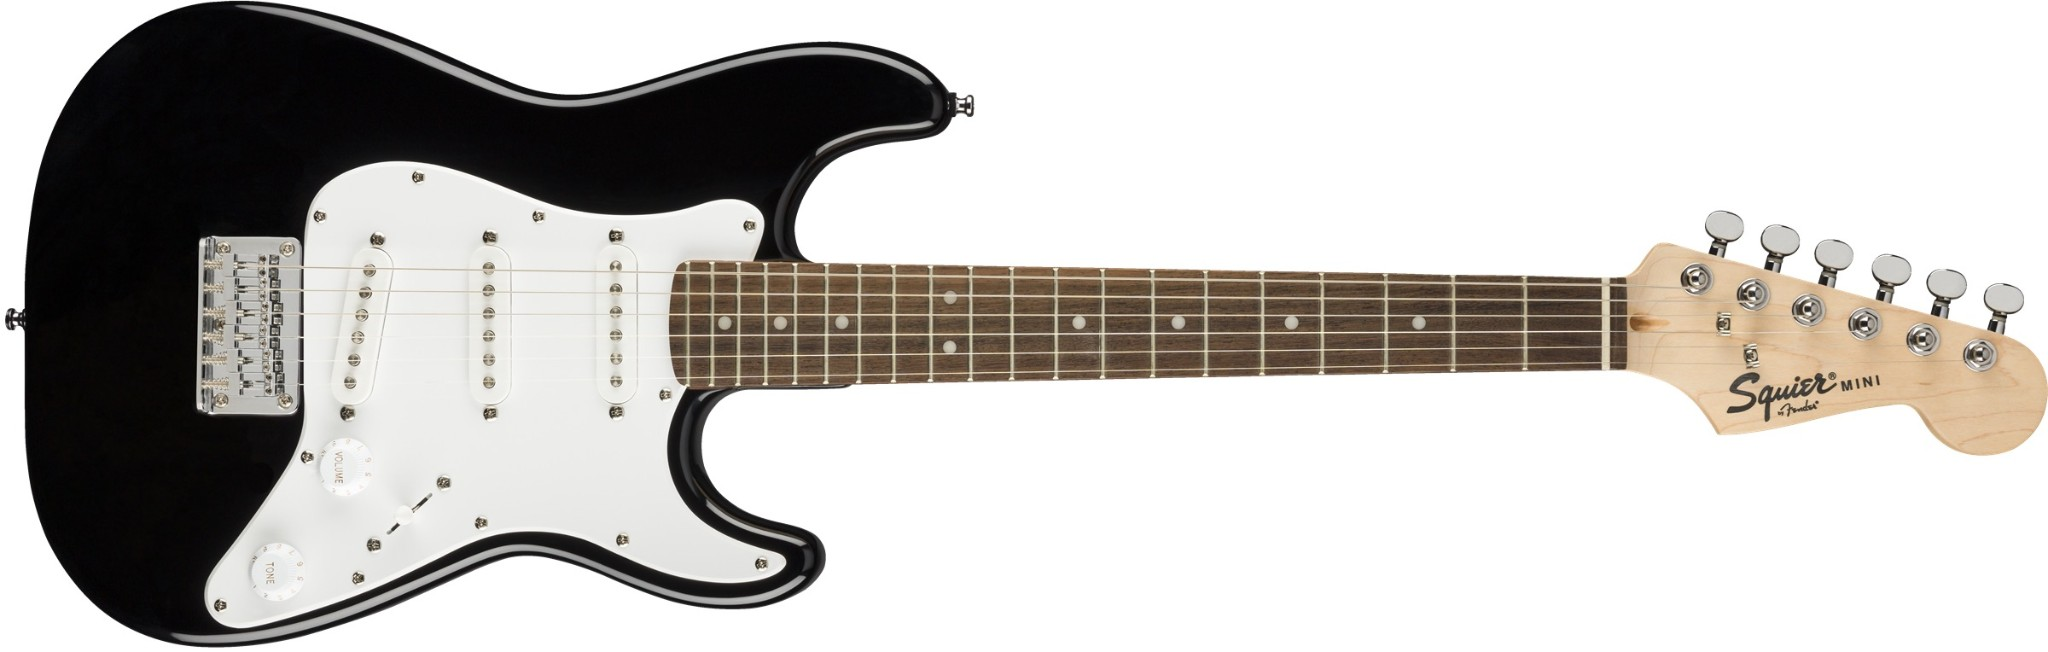 Squier Mini Strat In Black LN v2